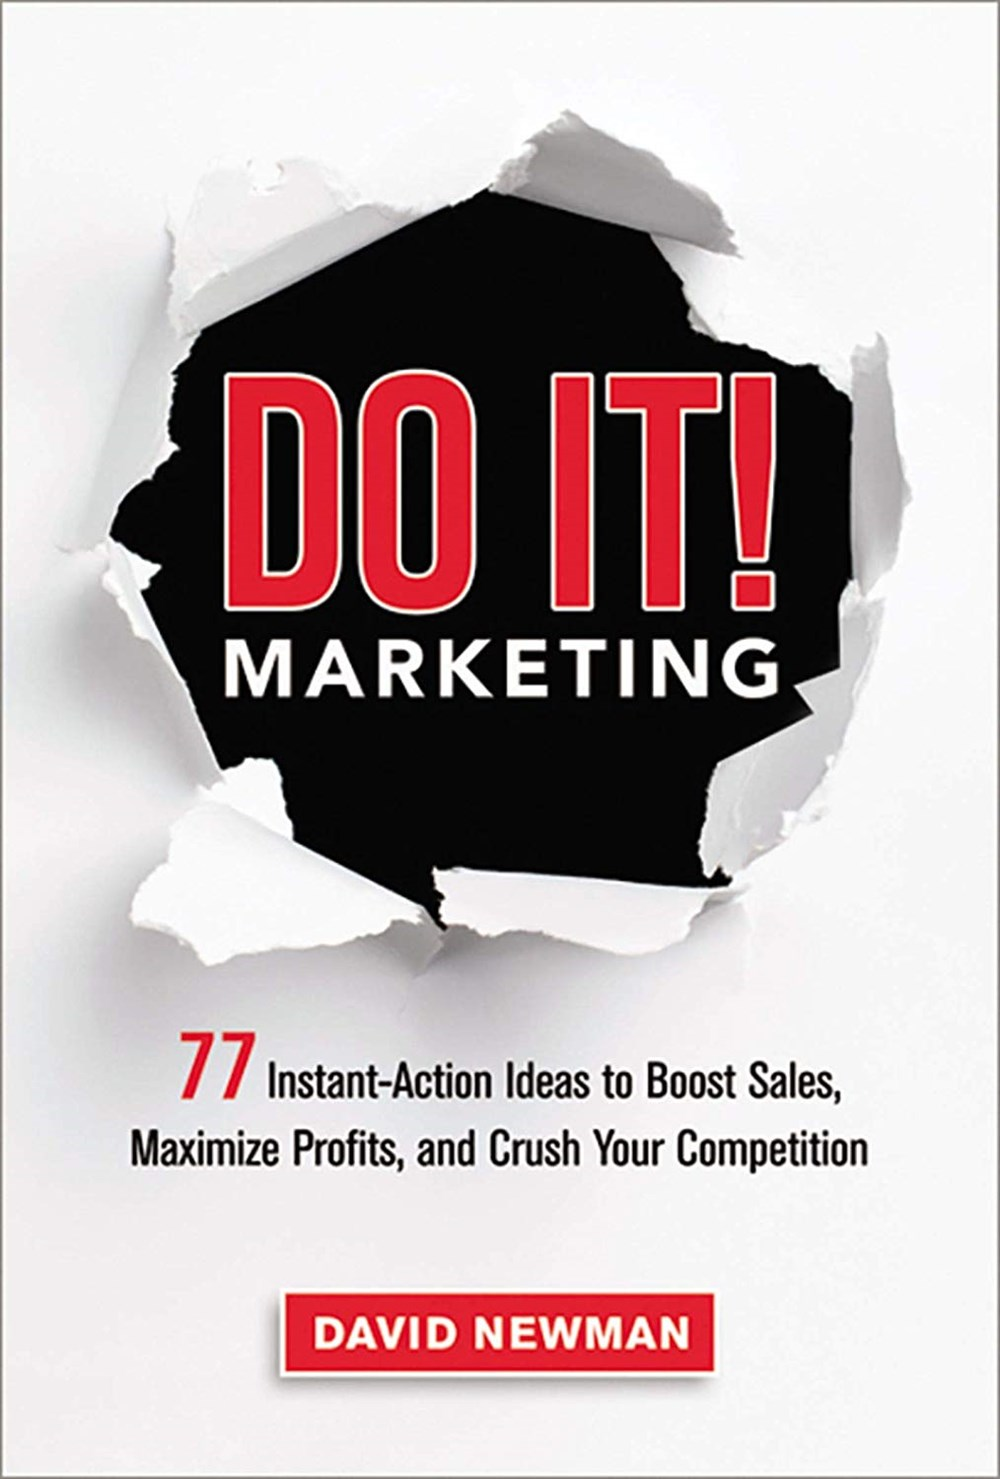 Do It! Marketing 77 Instant-Action Ideas to Boost Sales, Maximize Profits, and Crush Your Competitio